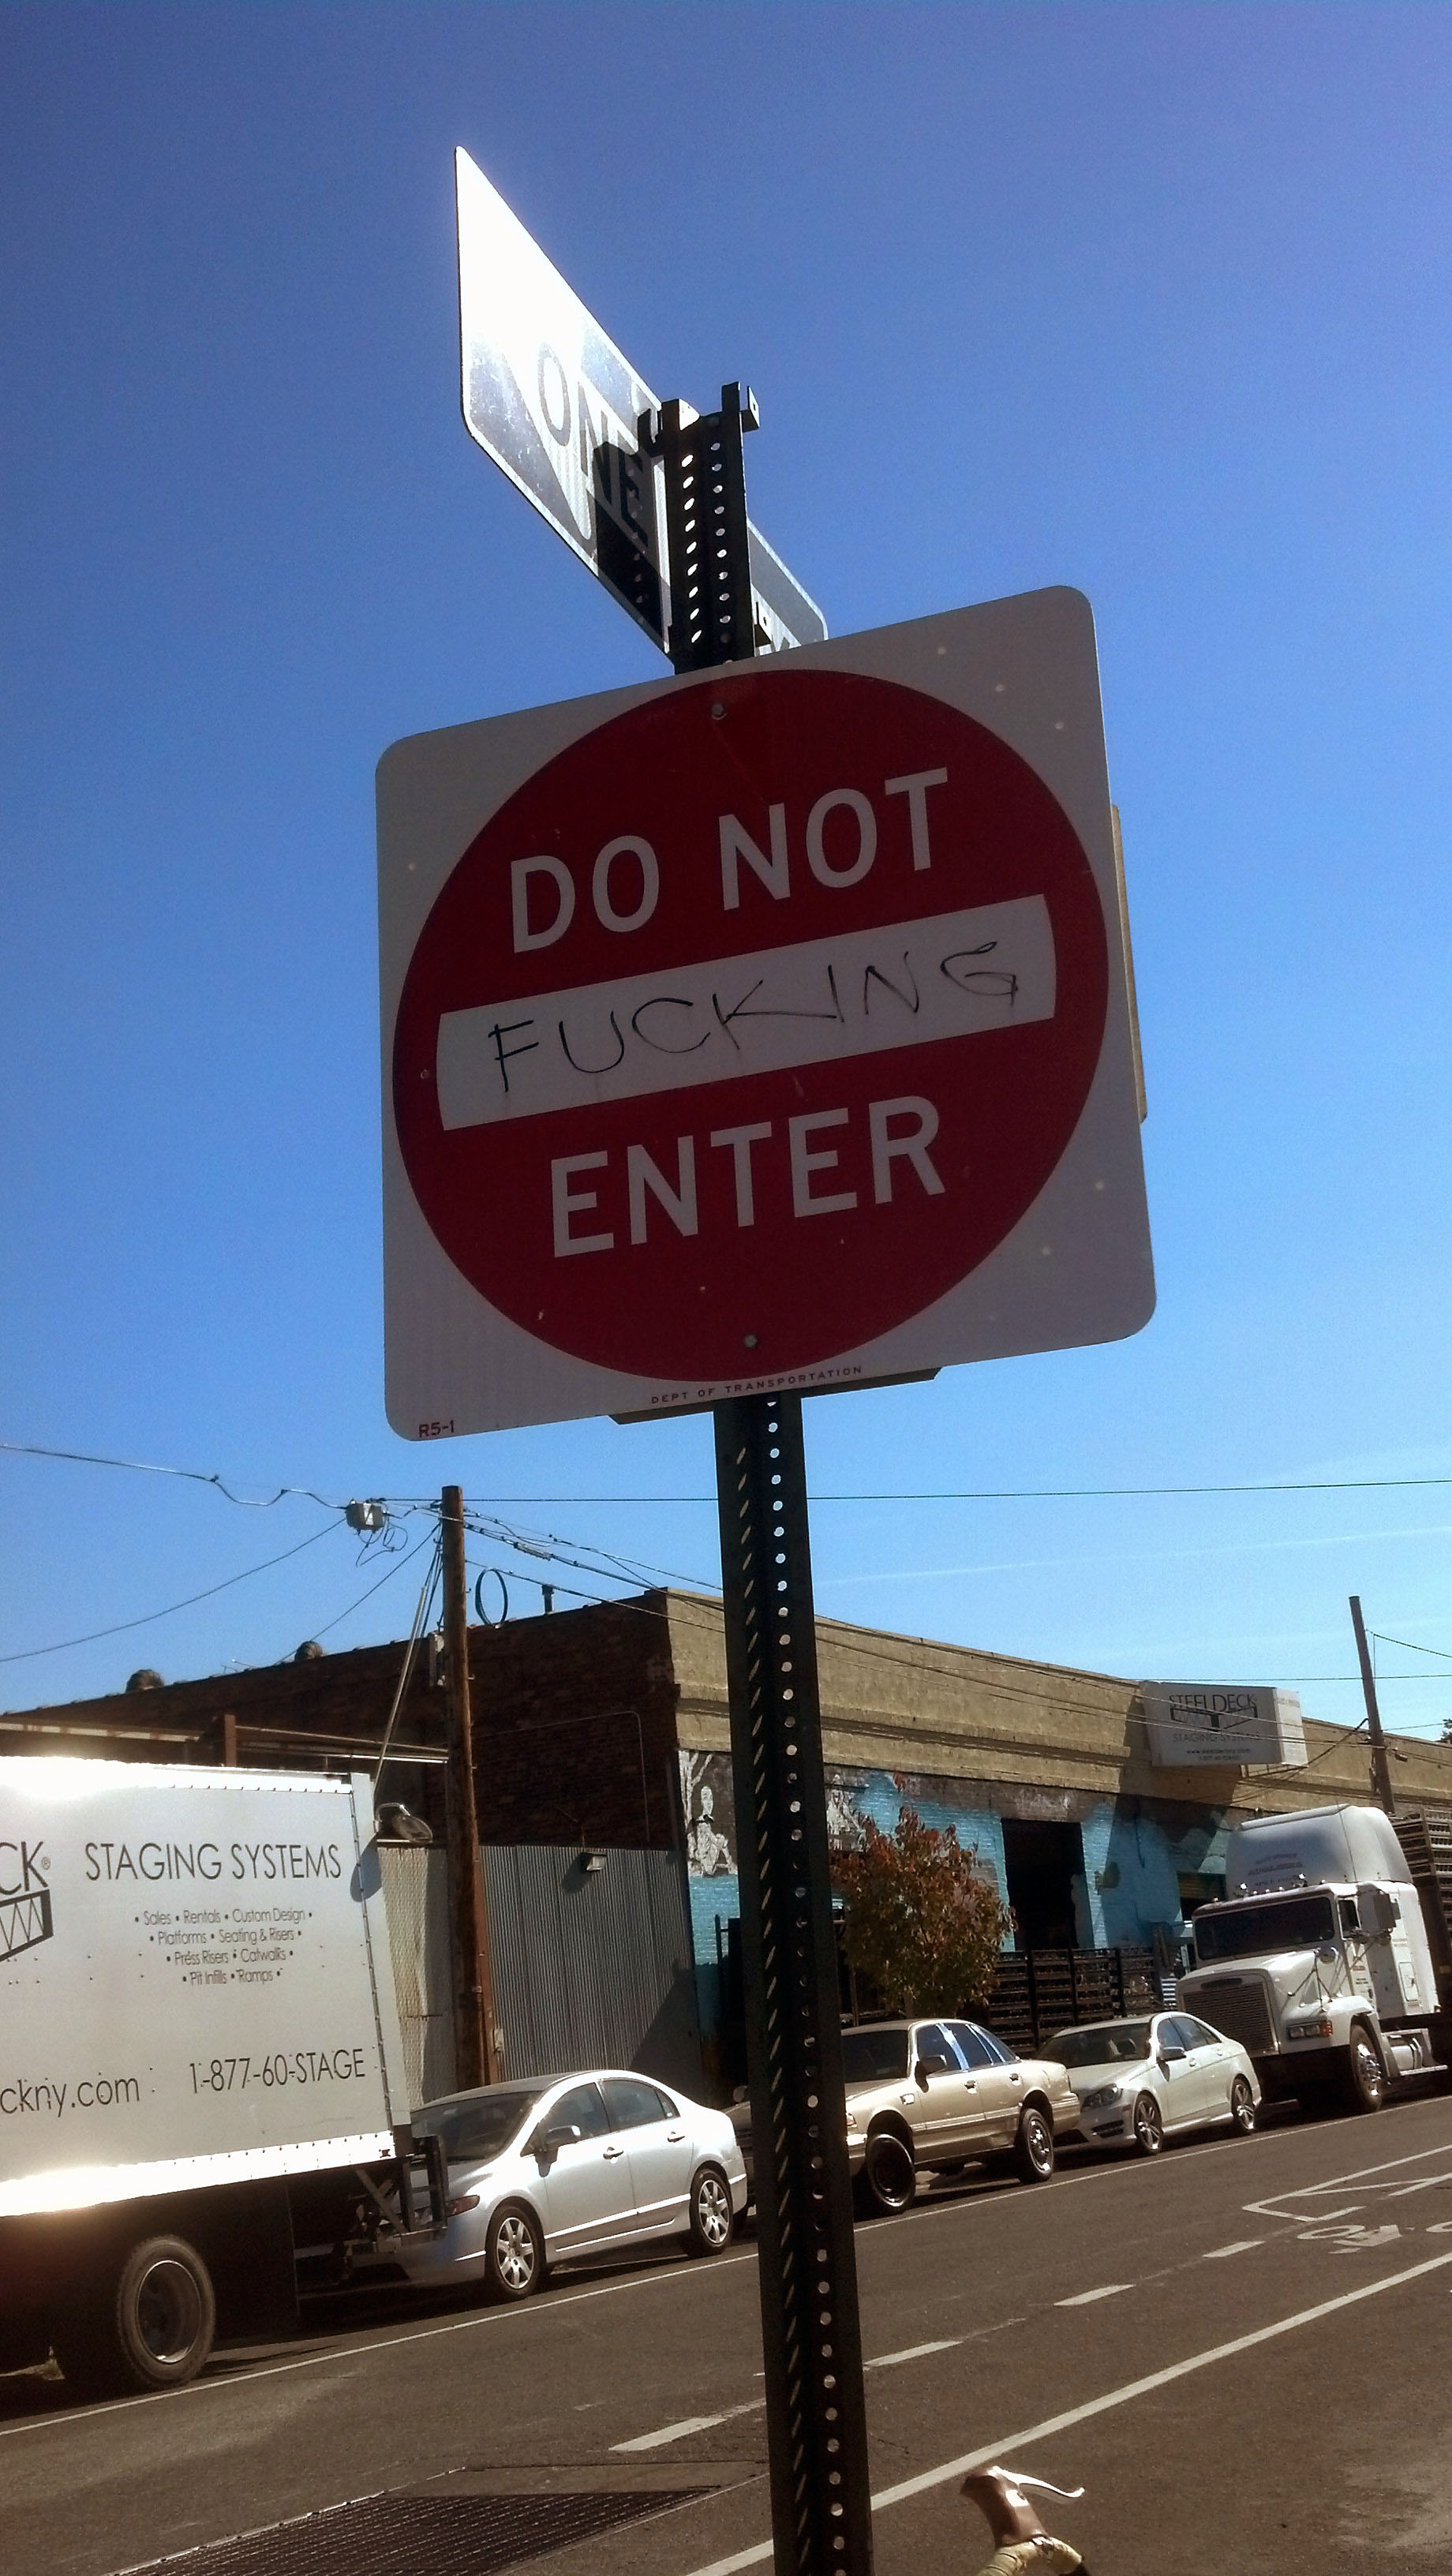 Do Not Fucking Enter